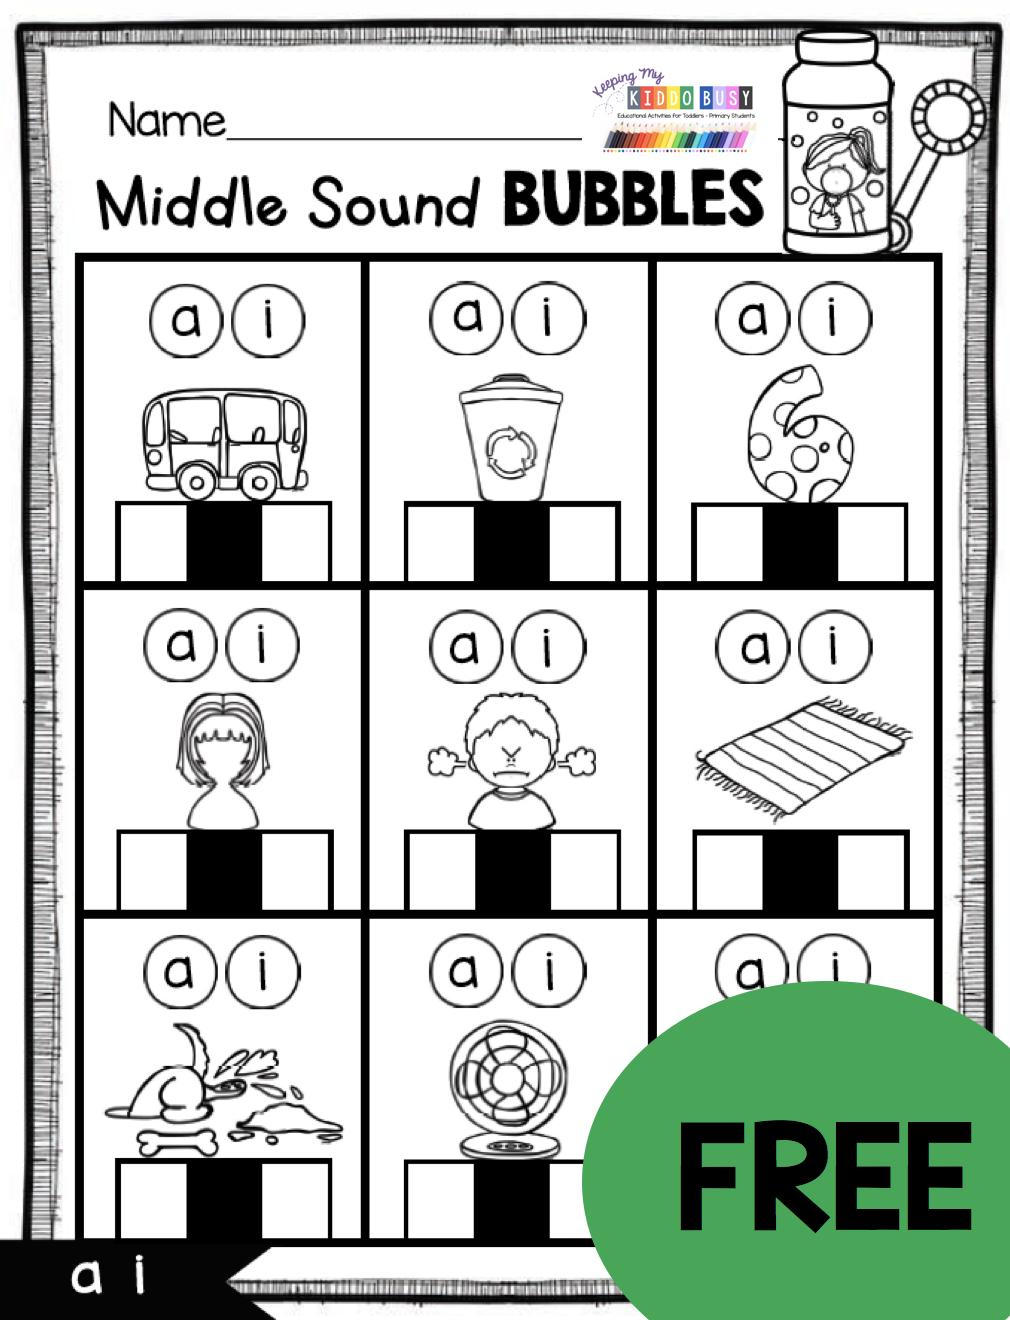 Free Phonics Worksheets And Activities For Teaching Short Vowels Cvc Words Kindergarten First Grade Cvc Words Cvc Words Kindergarten Phonics Lessons [ 1320 x 1010 Pixel ]